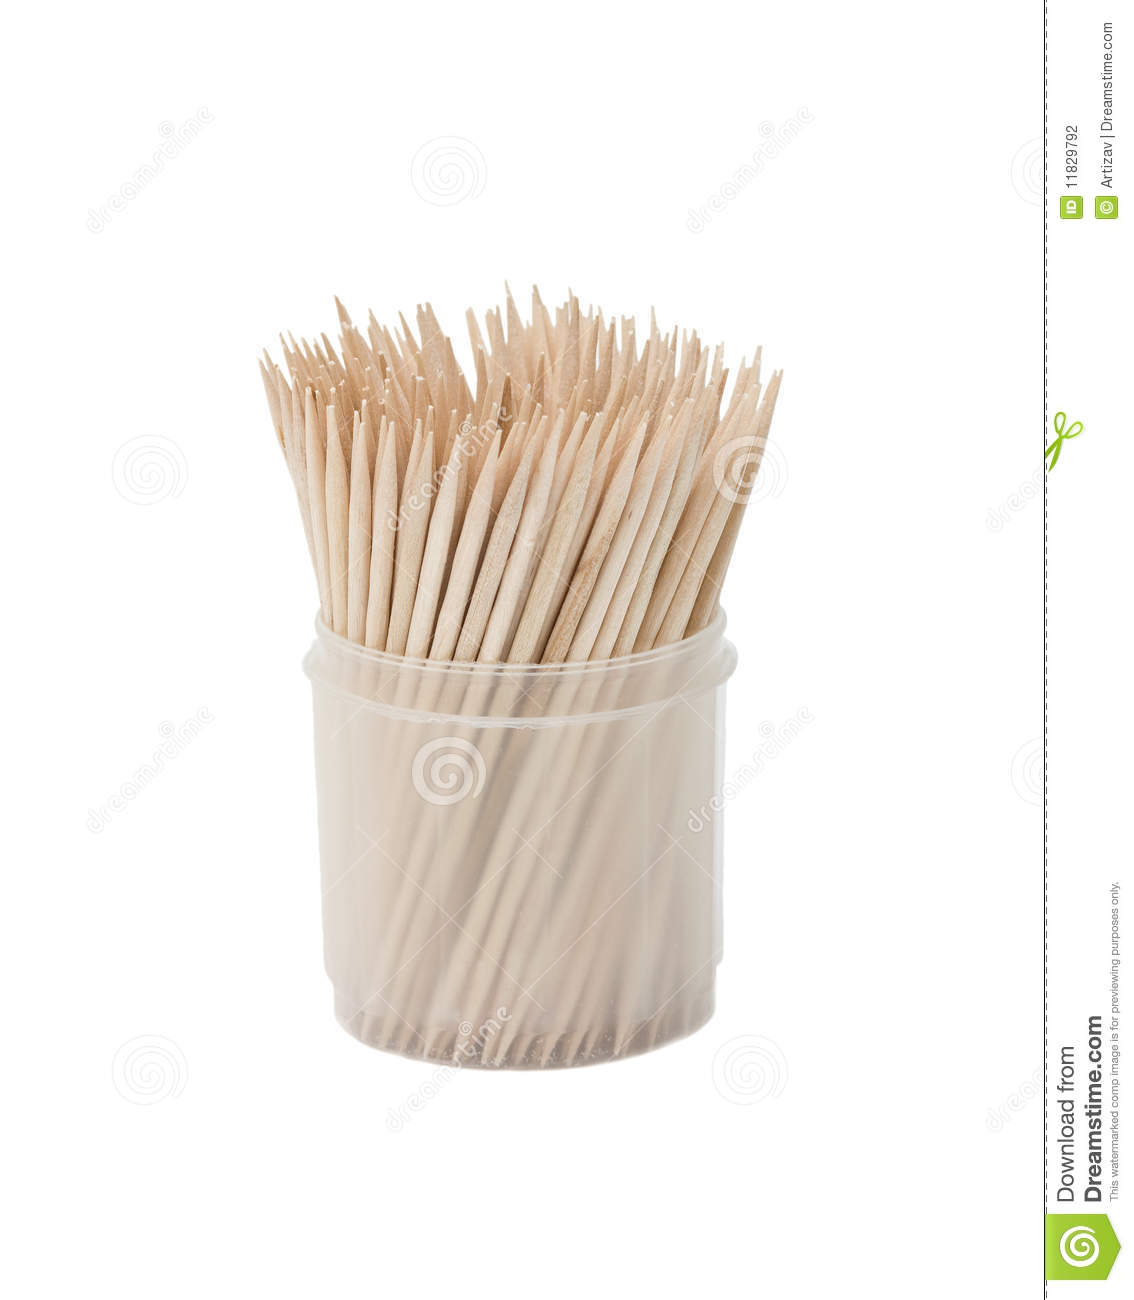 Toothpicks In Box Stock Photography - Image: 11829792